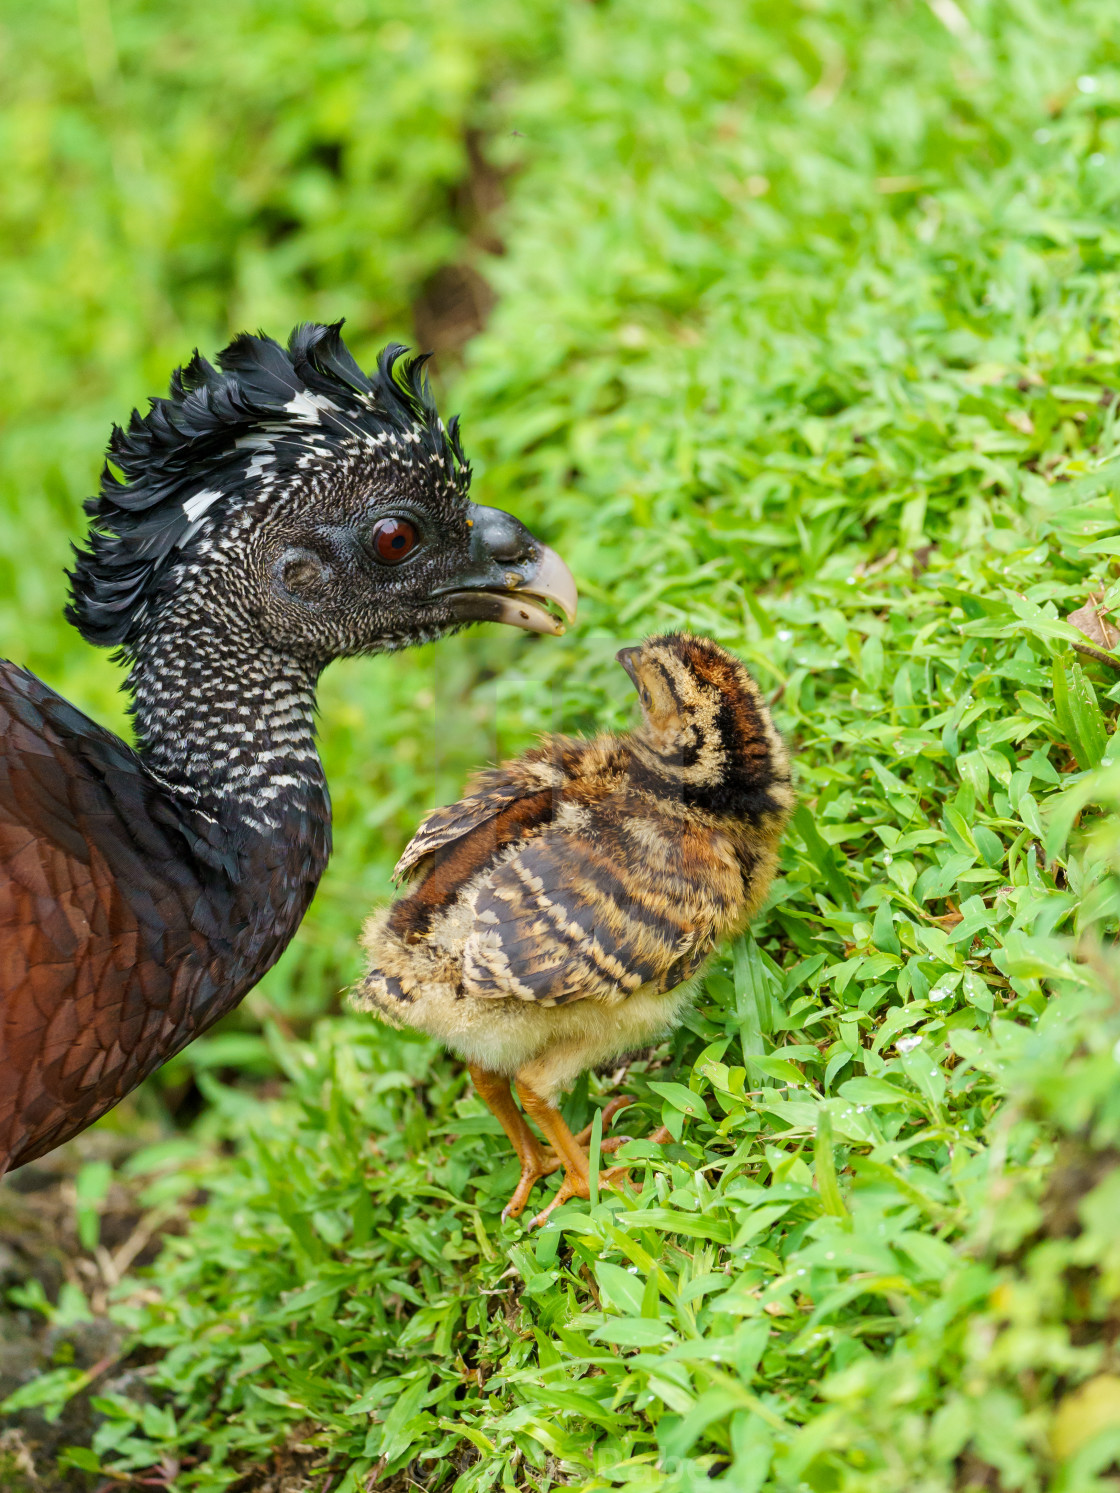 """Great Curassow (Crax rubra) female with chick, taken in Costa Rica"" stock image"